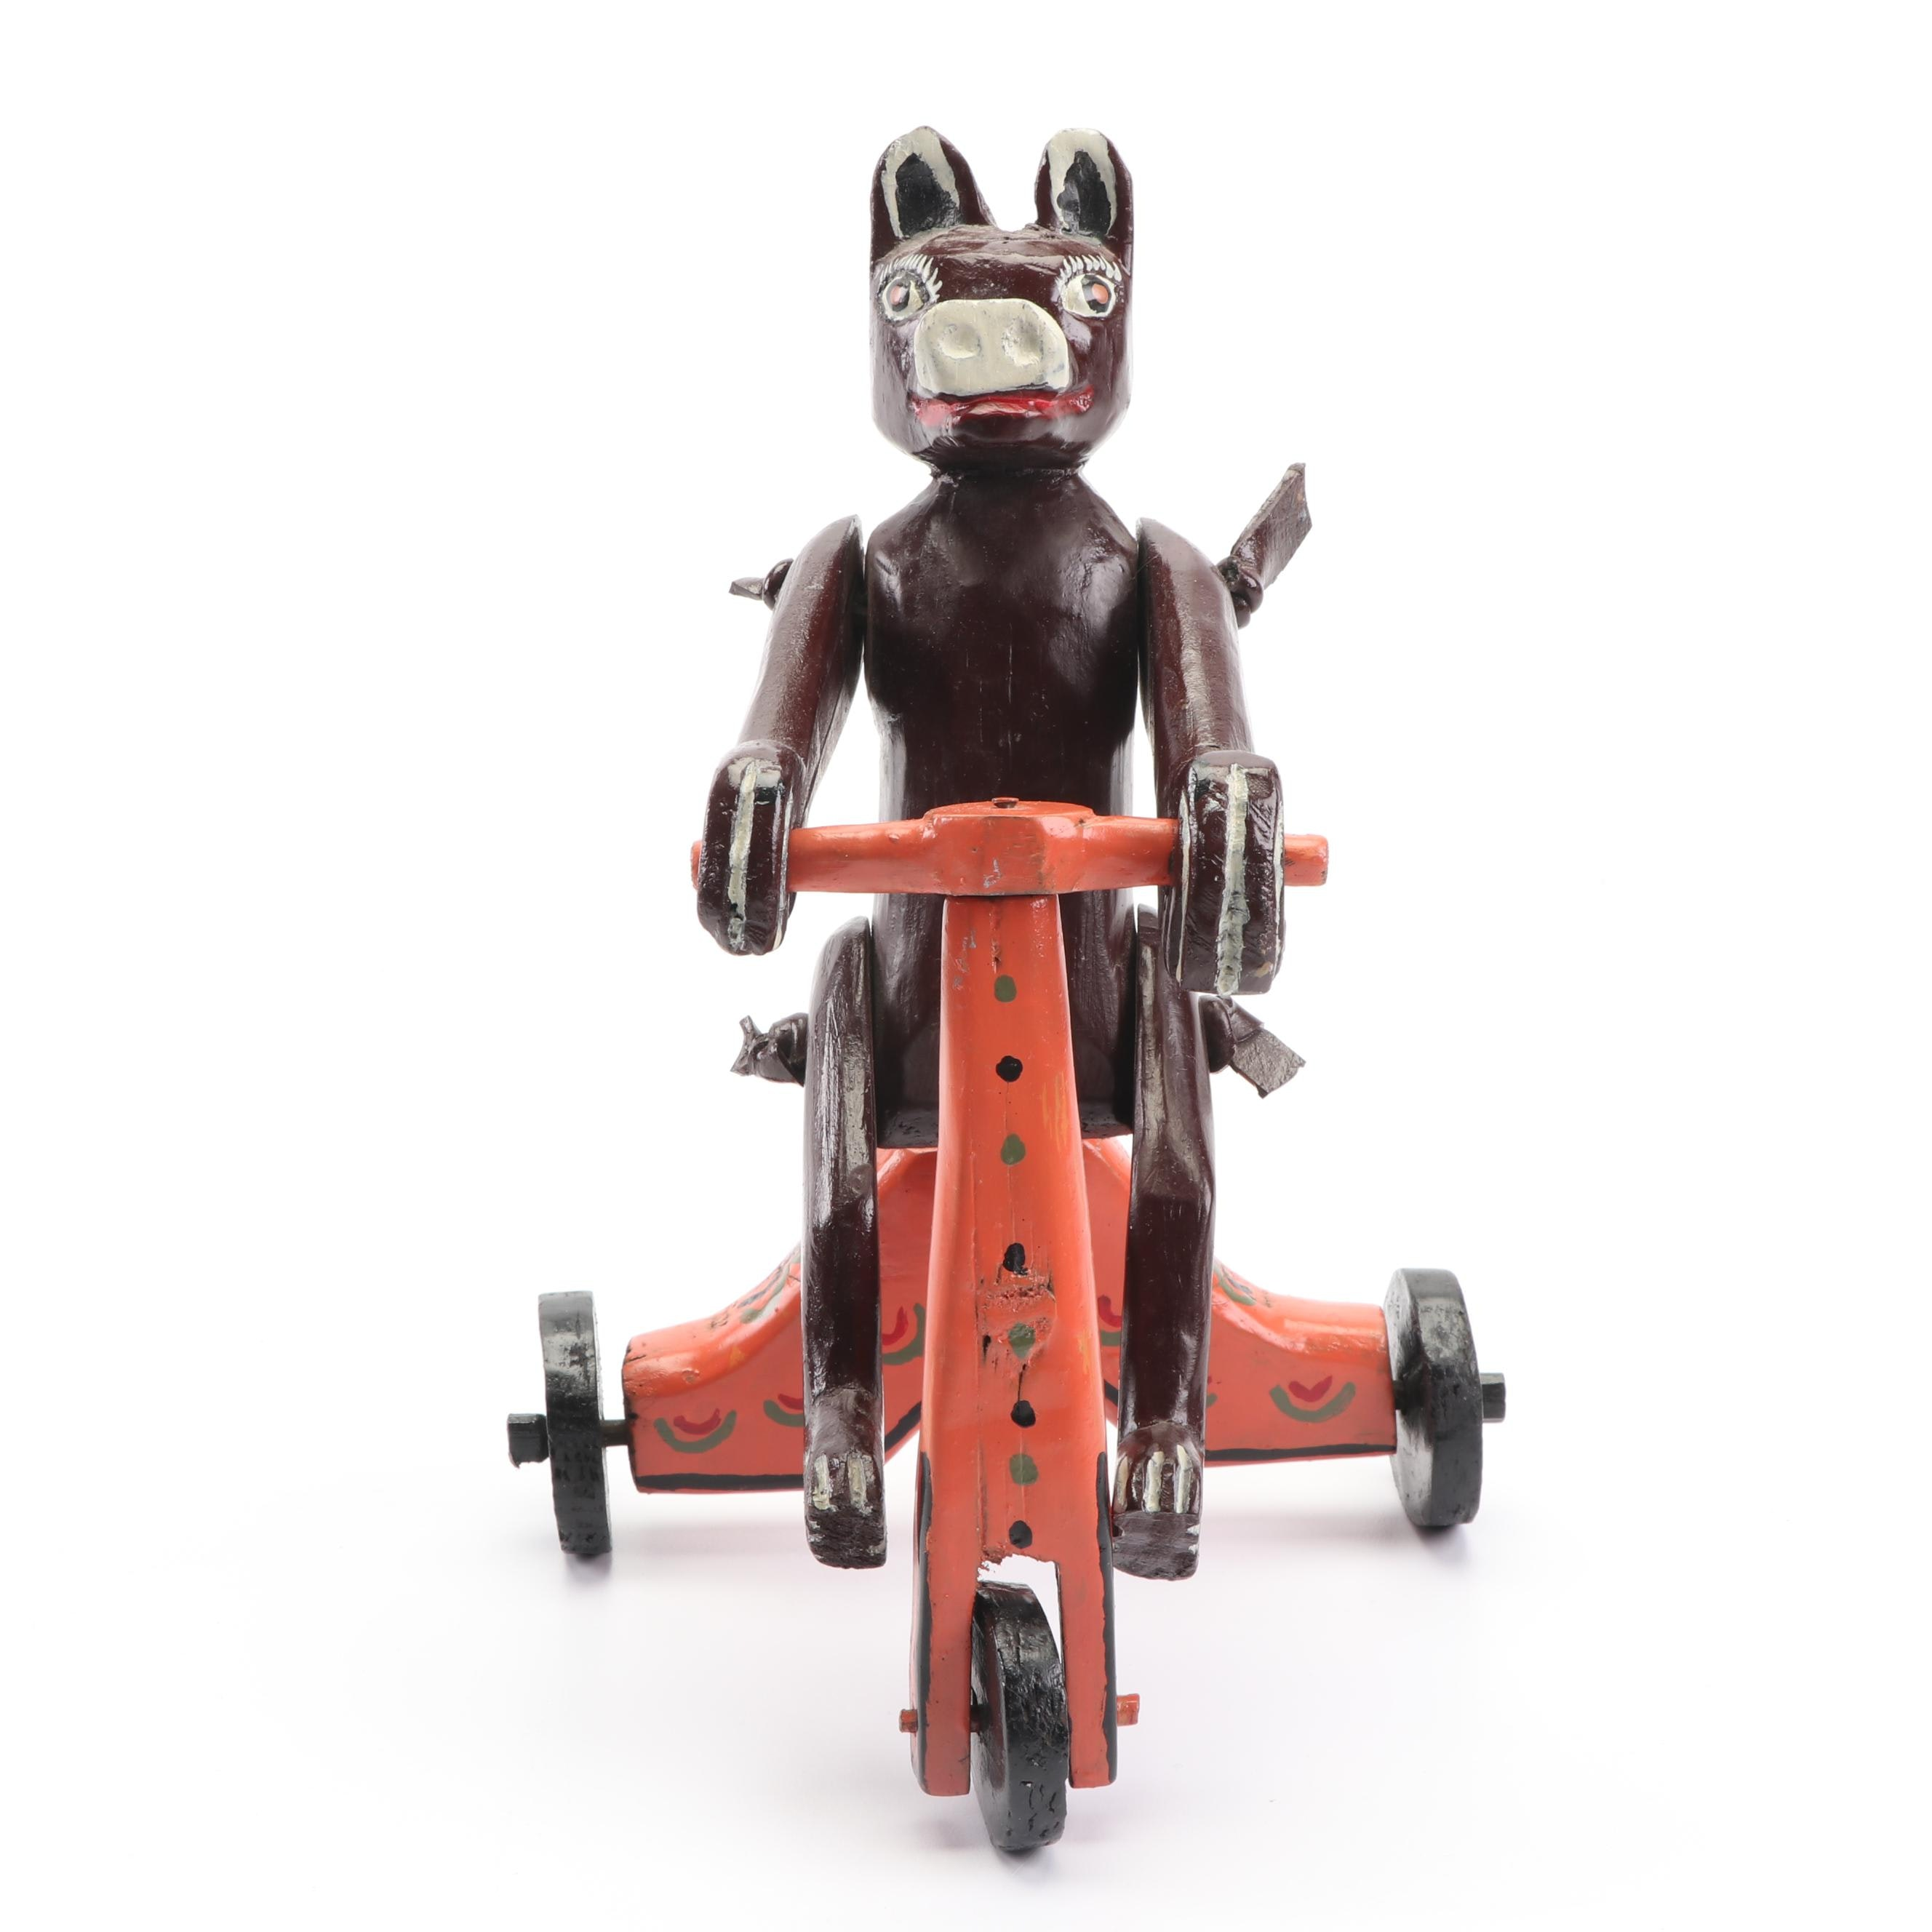 Hand-Painted Pig Riding Tricycle